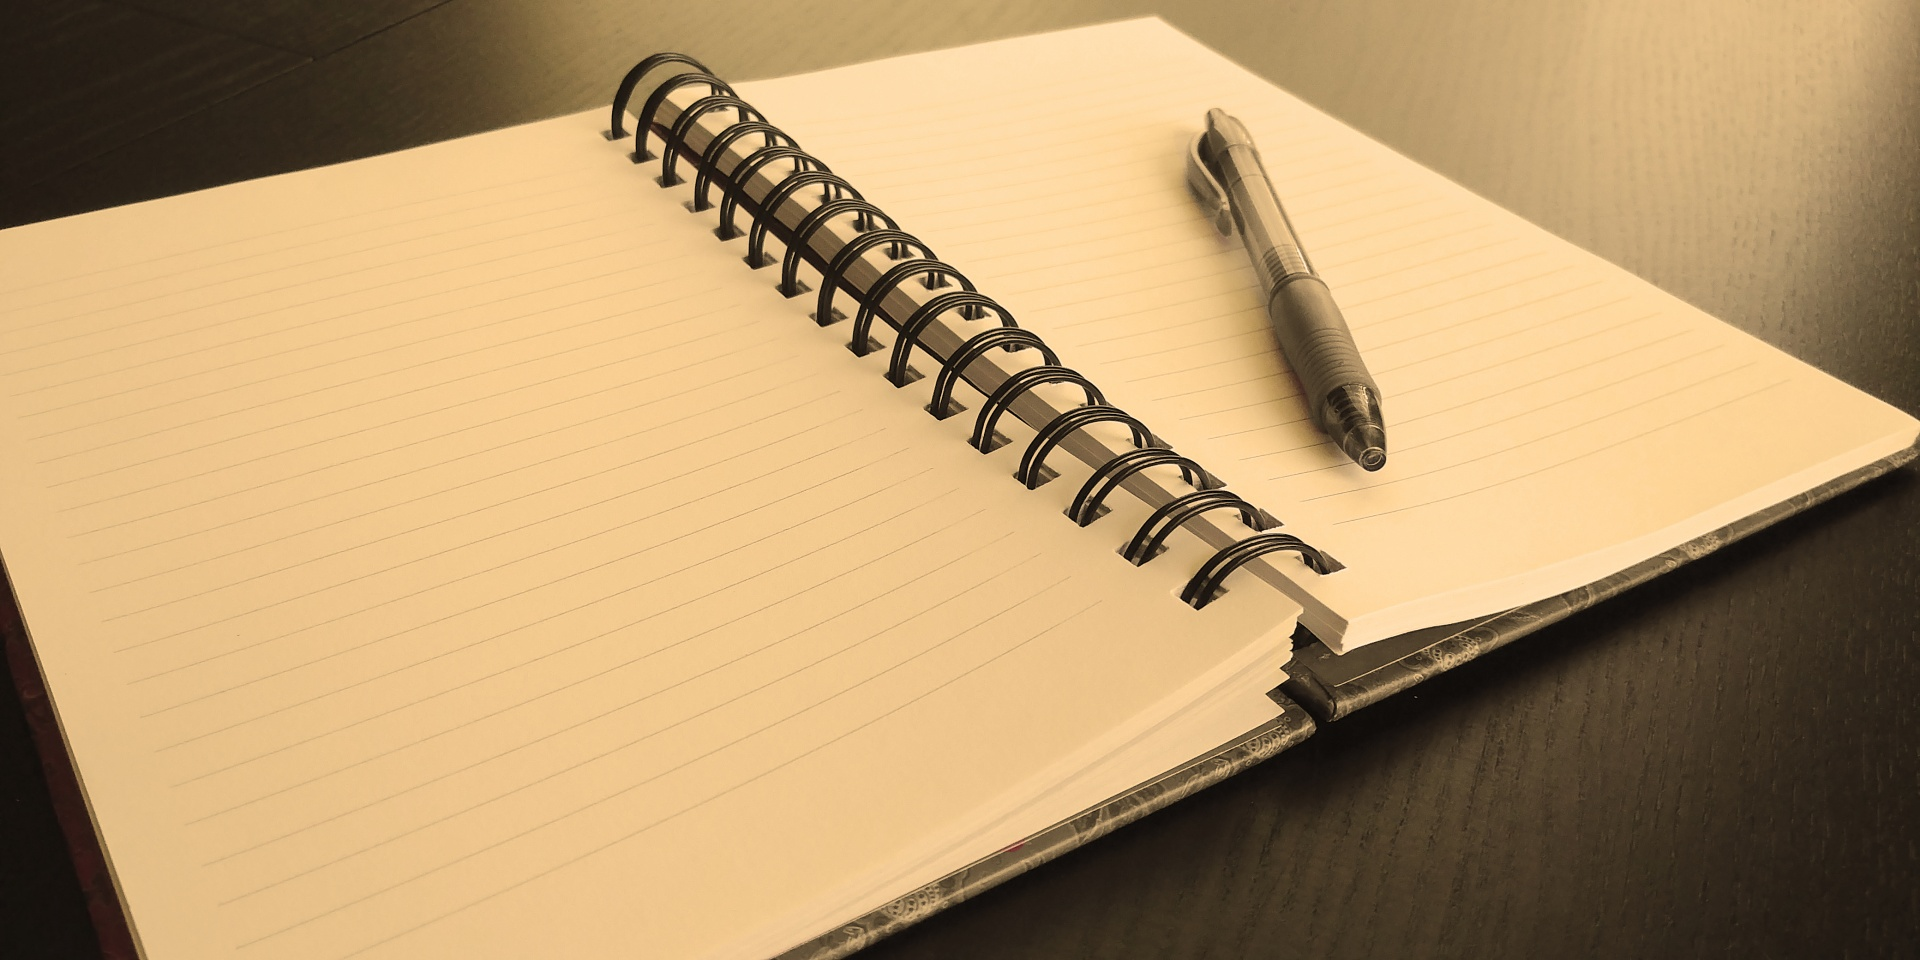 open-blank-notebook-in-sepia